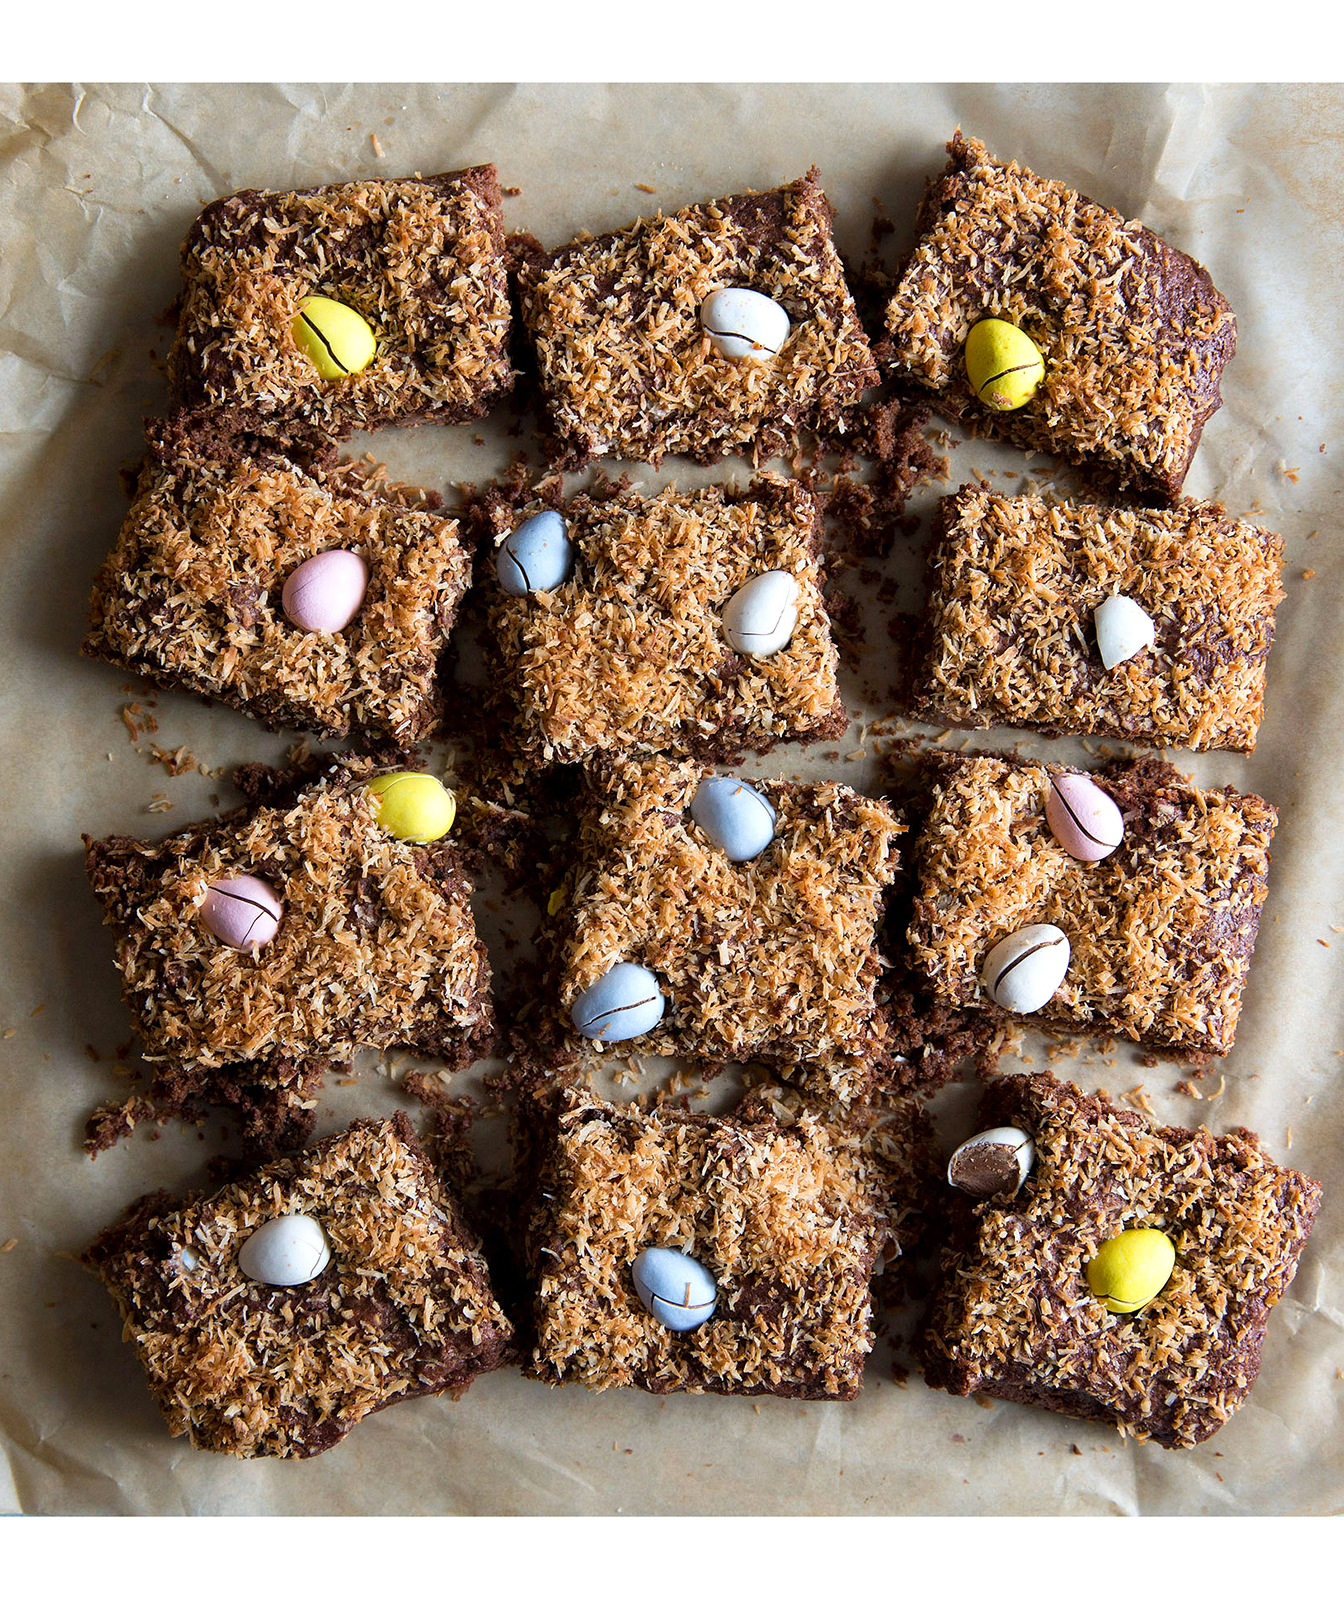 Toasted Coconut Cadbury Egg Brownies